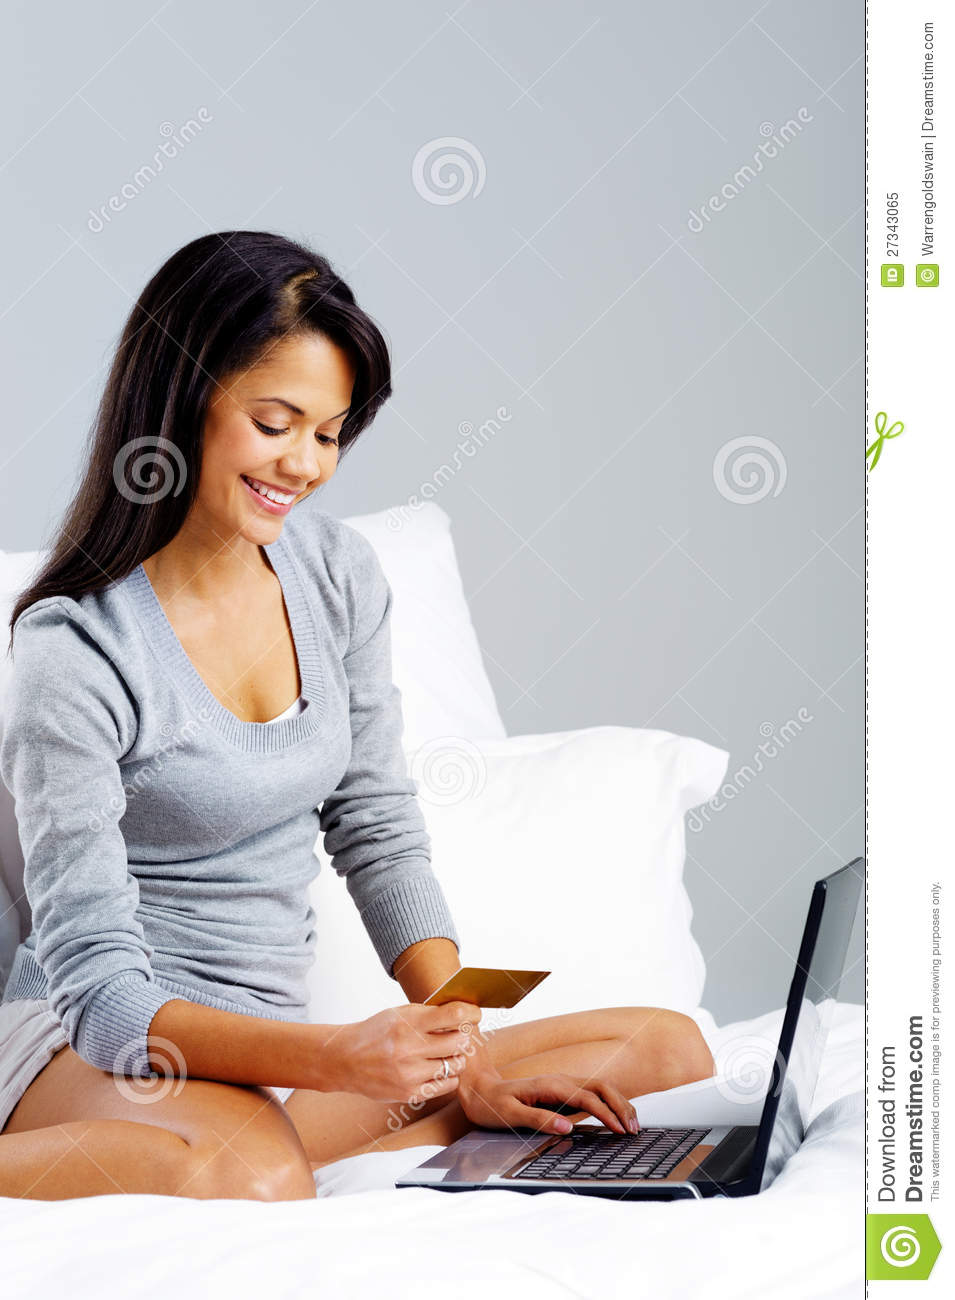 Online Shopping Woman Royalty Free Stock Photo - Image ...